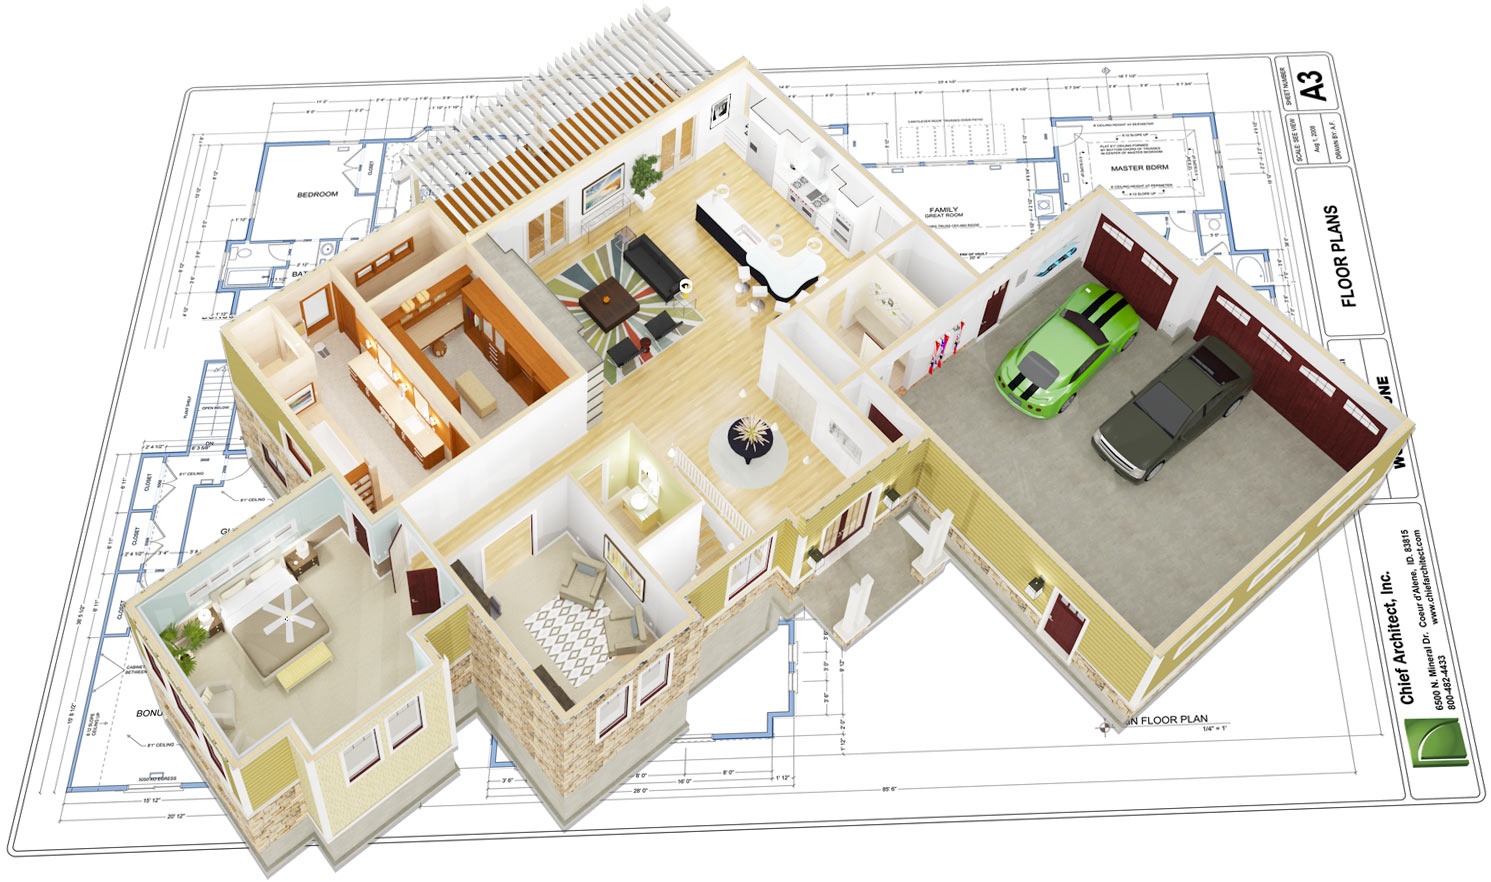 Chief architect interior software for professional interior designers - Home construction design software ...